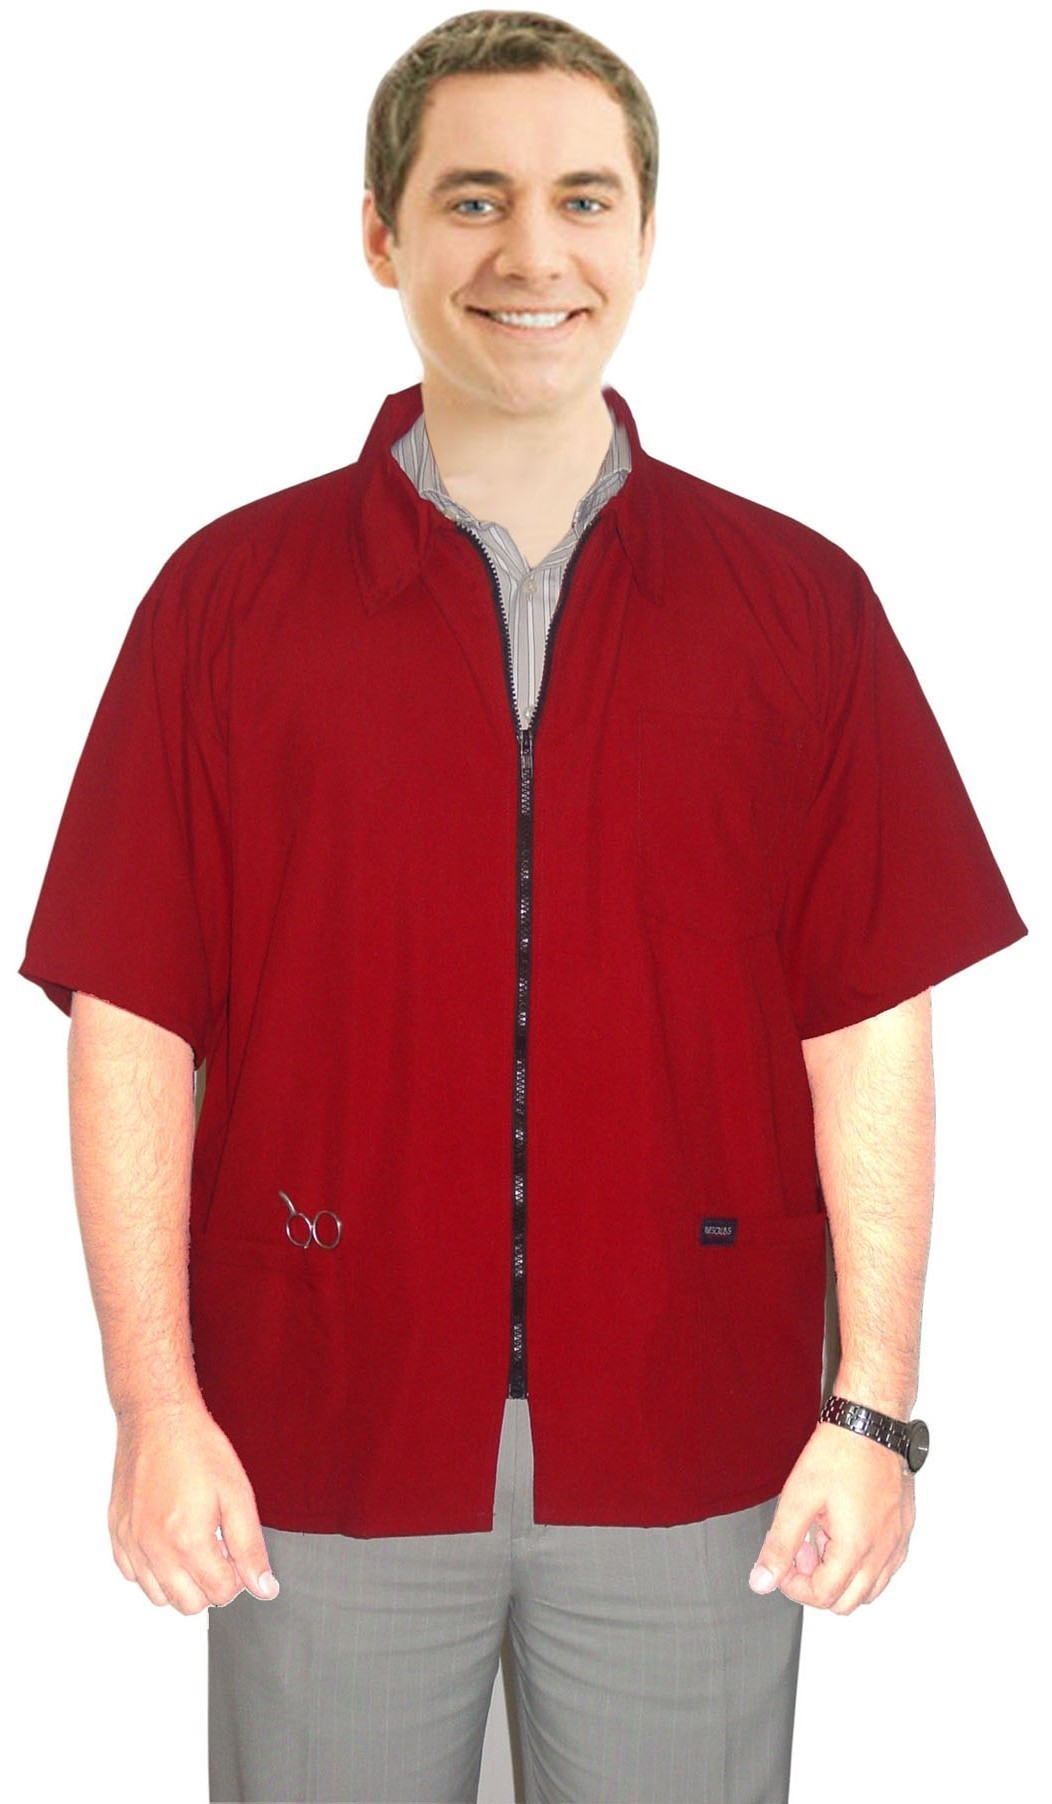 Microfiber barber jacket 3 pocket half sleeve with zipper